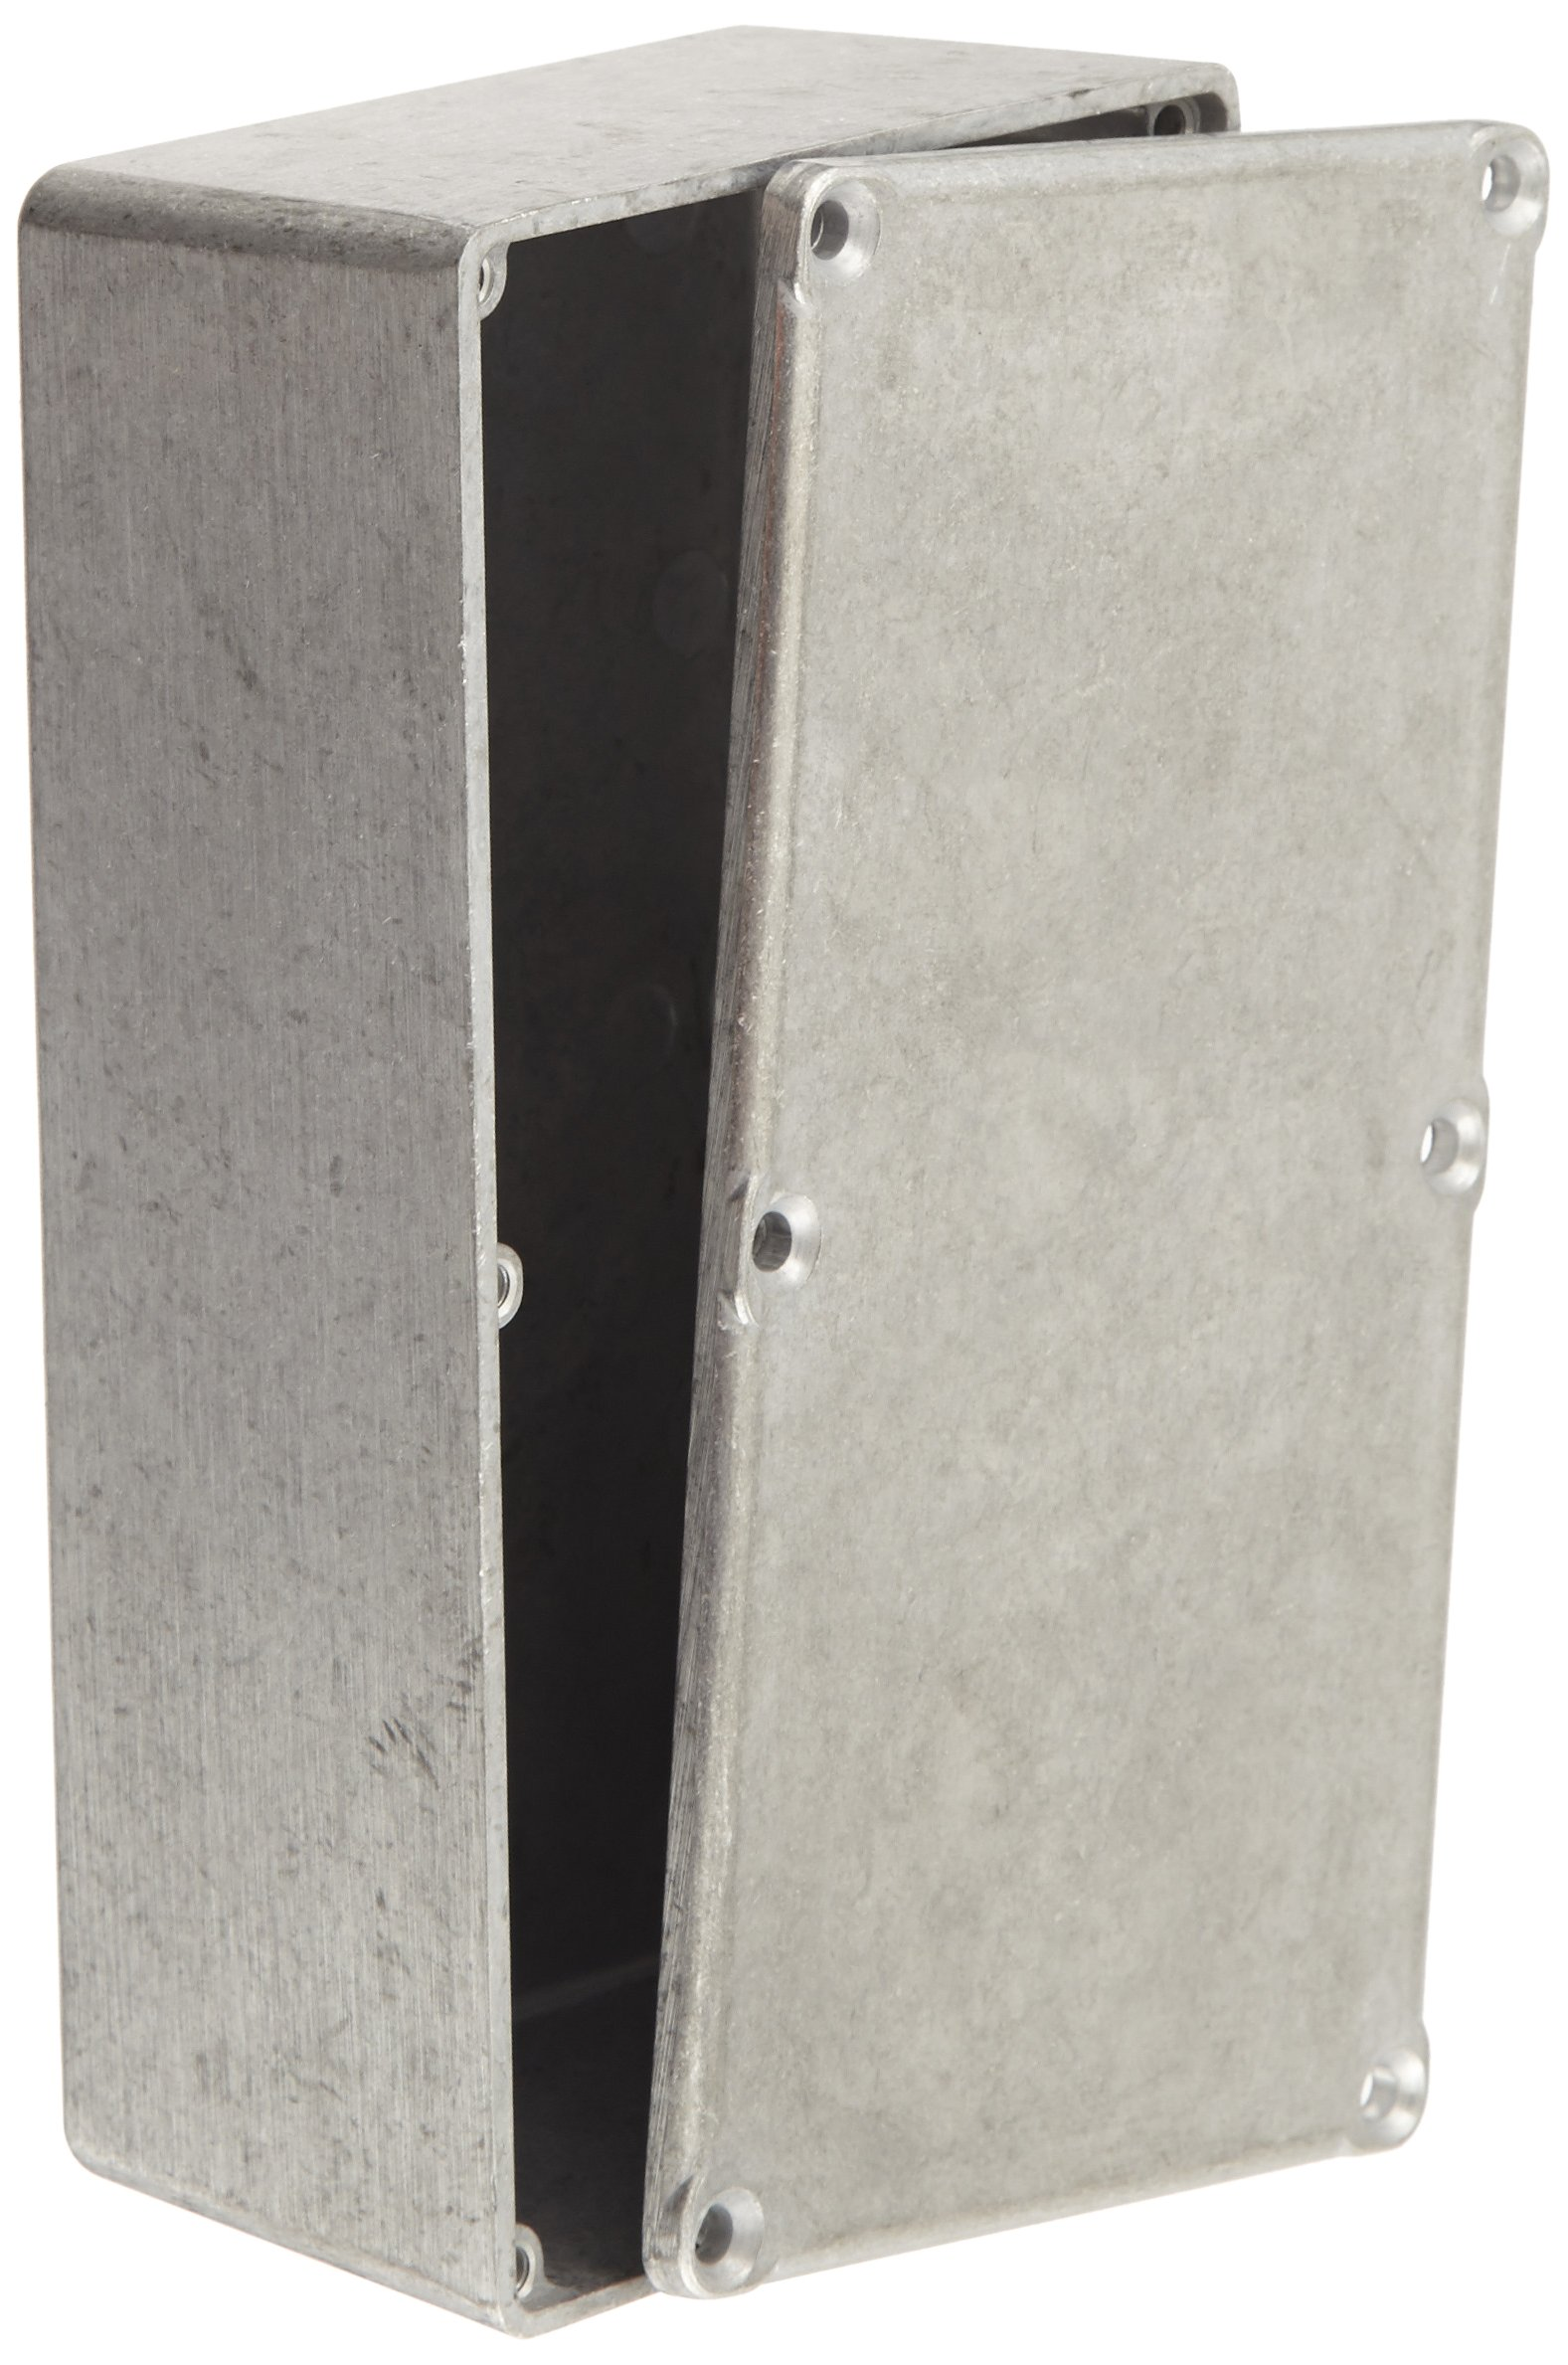 BUD Industries CU-476 Aluminum Econobox, 6'' Length x 3-1/4'' Width x 2'' Height, Natural Finish